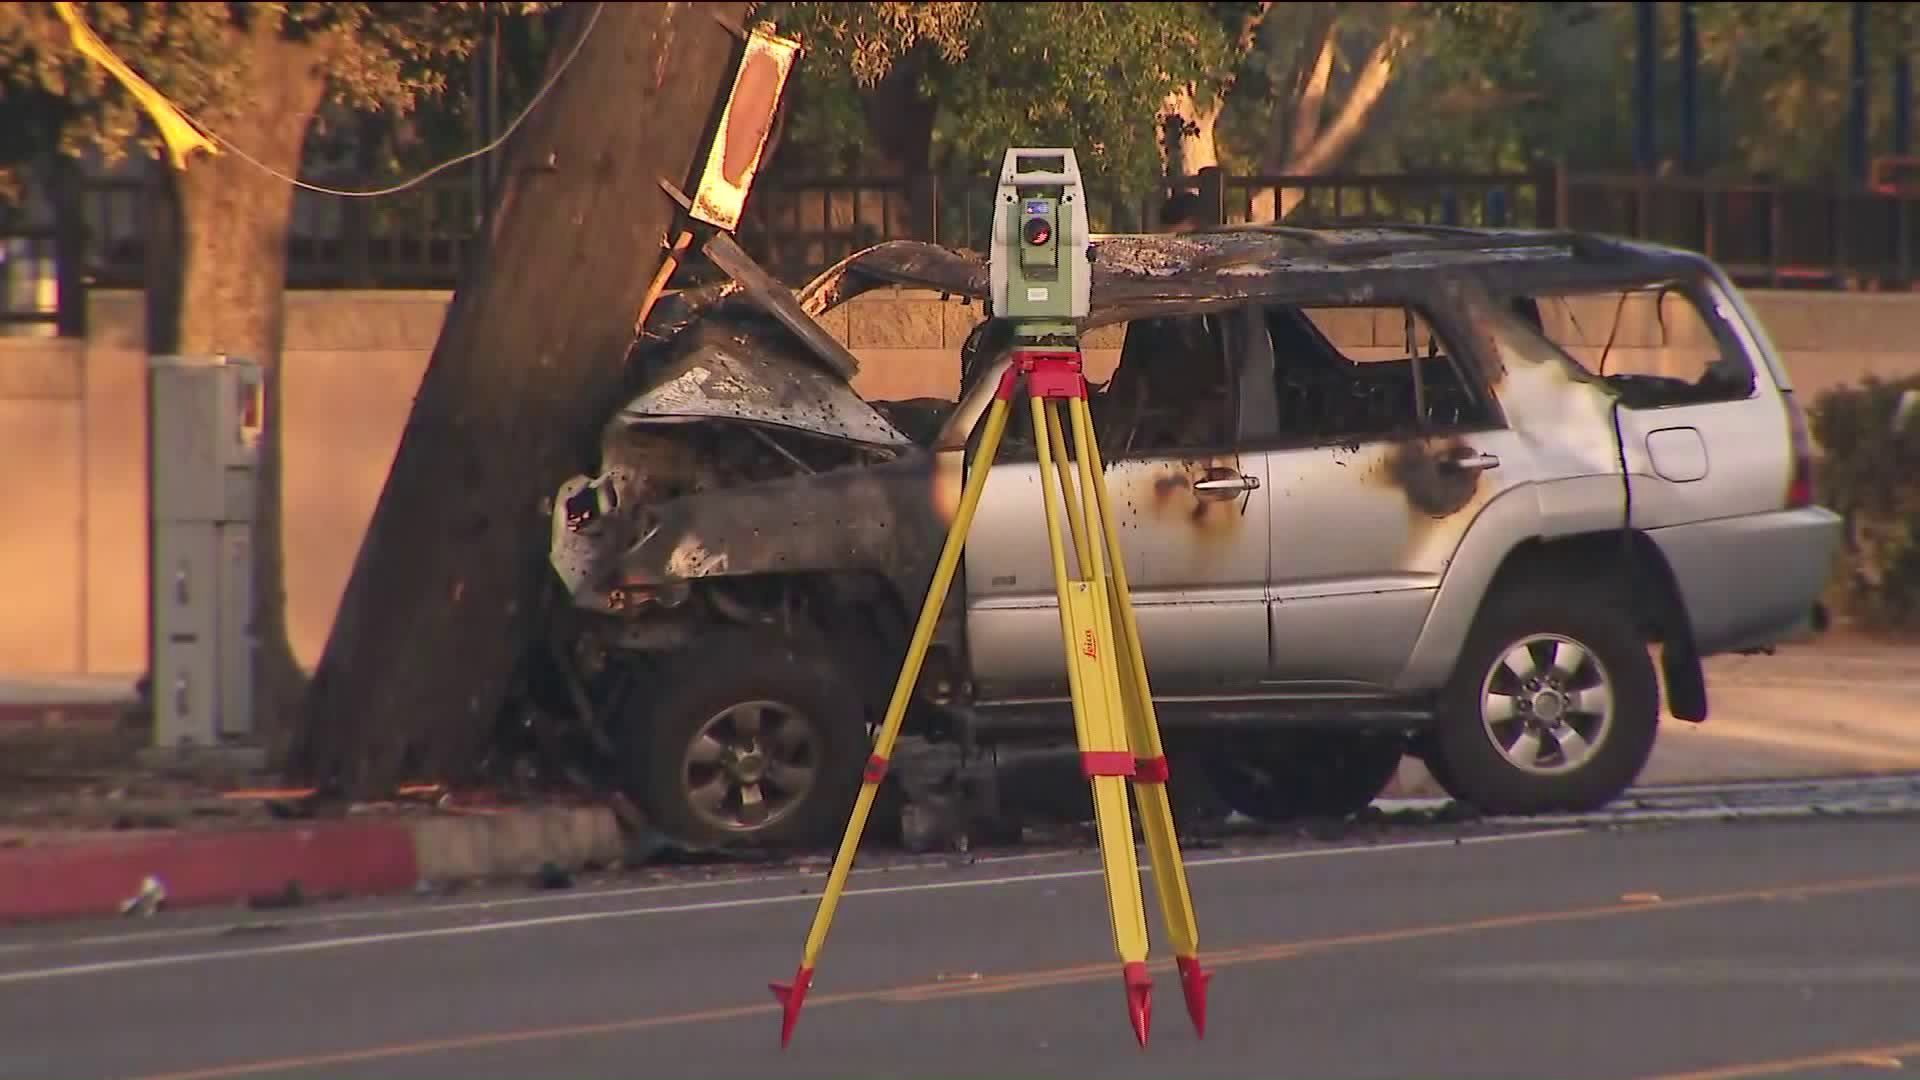 The aftermath of the fatal collision in Pomona after a car crashed into a power pole on April 12, 2019. (Credit: KTLA)